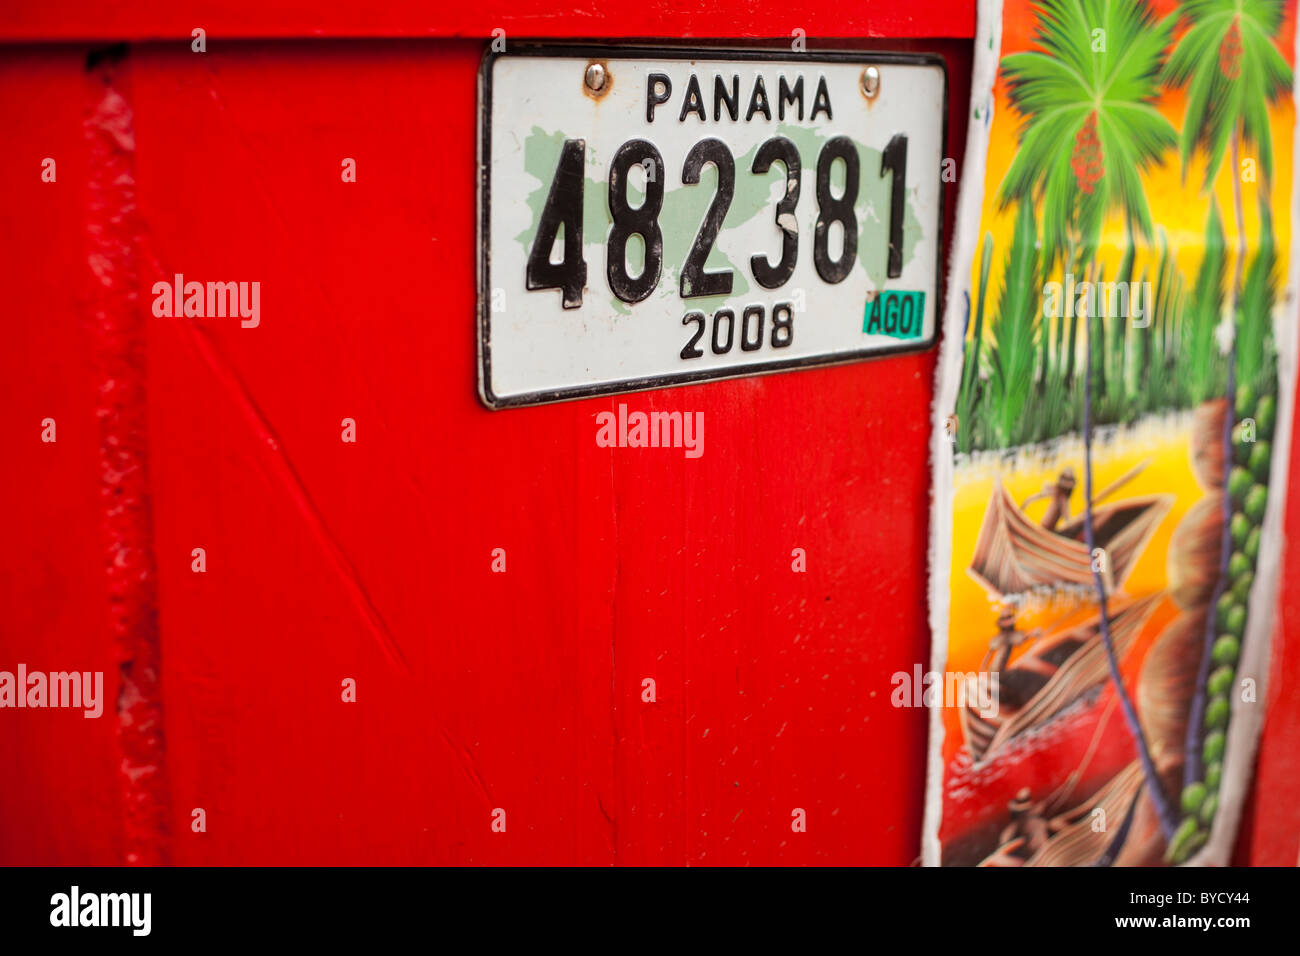 Registration Plate and painting with red in Panama - Stock Image